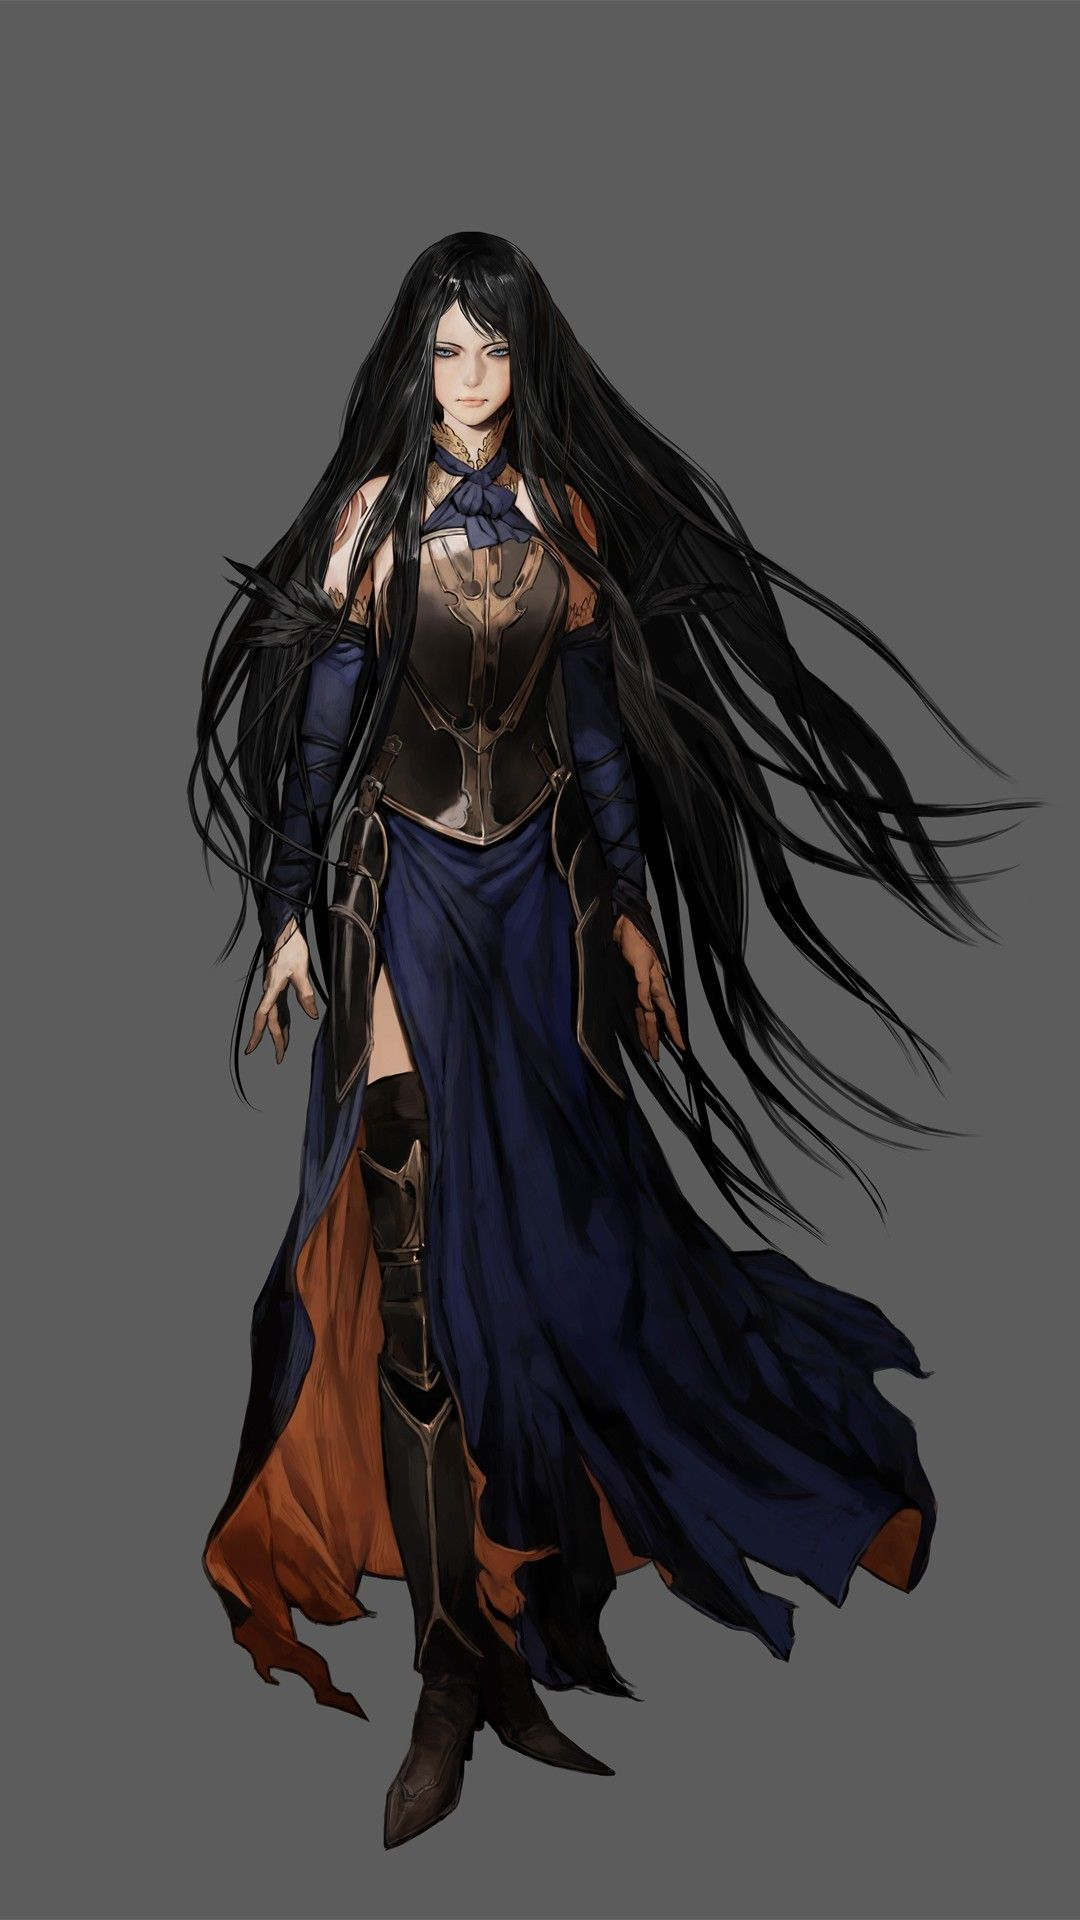 Shanoa Castlevania Order Of Ecclesia Mobile Wallpaper 4918